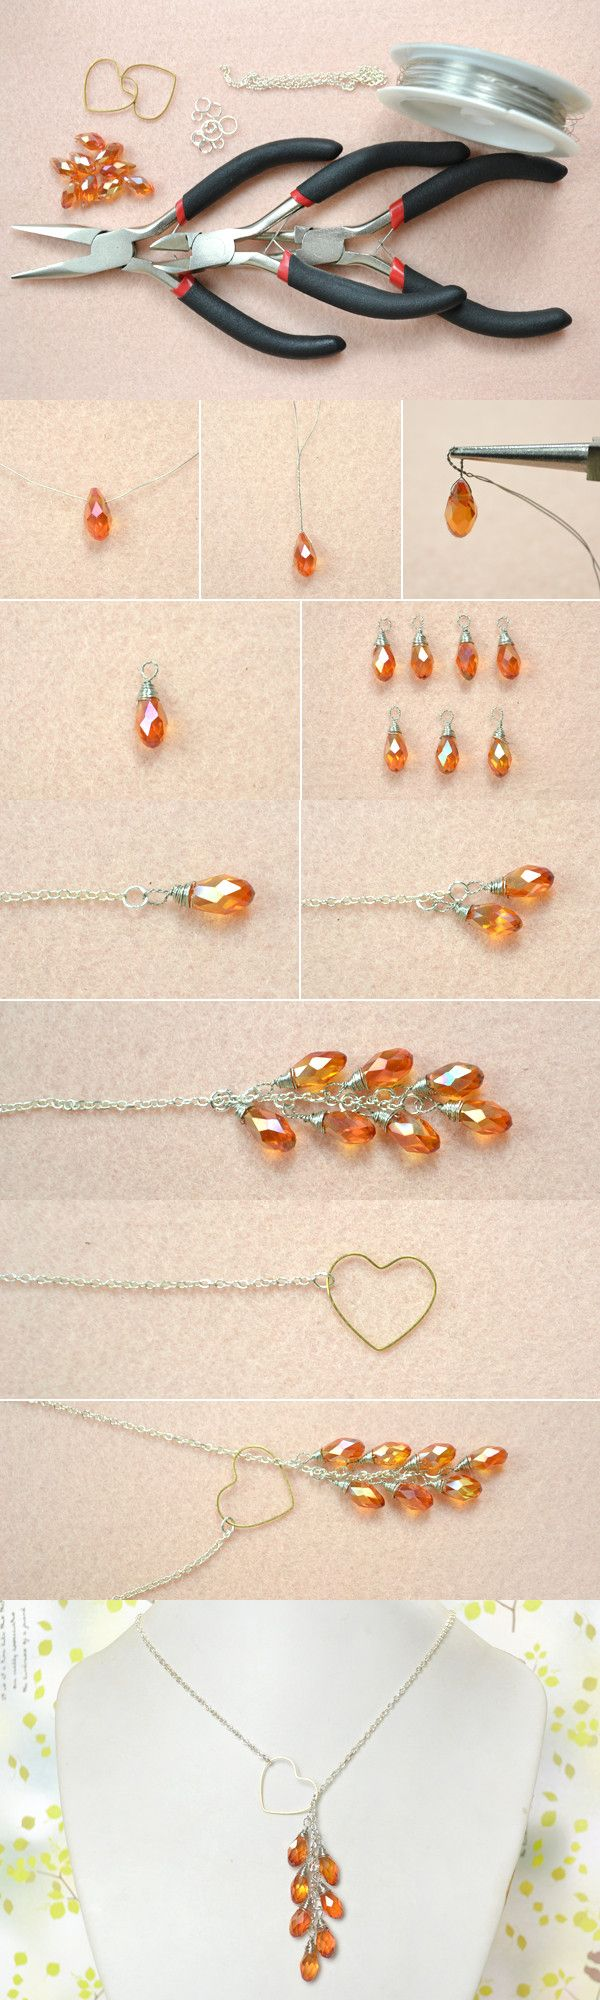 http://rubies.work/0267-ruby-rings/ Easy DIY Tutorial on How to Make a Heart Lariat Style Necklace from LC.Pandahall.com